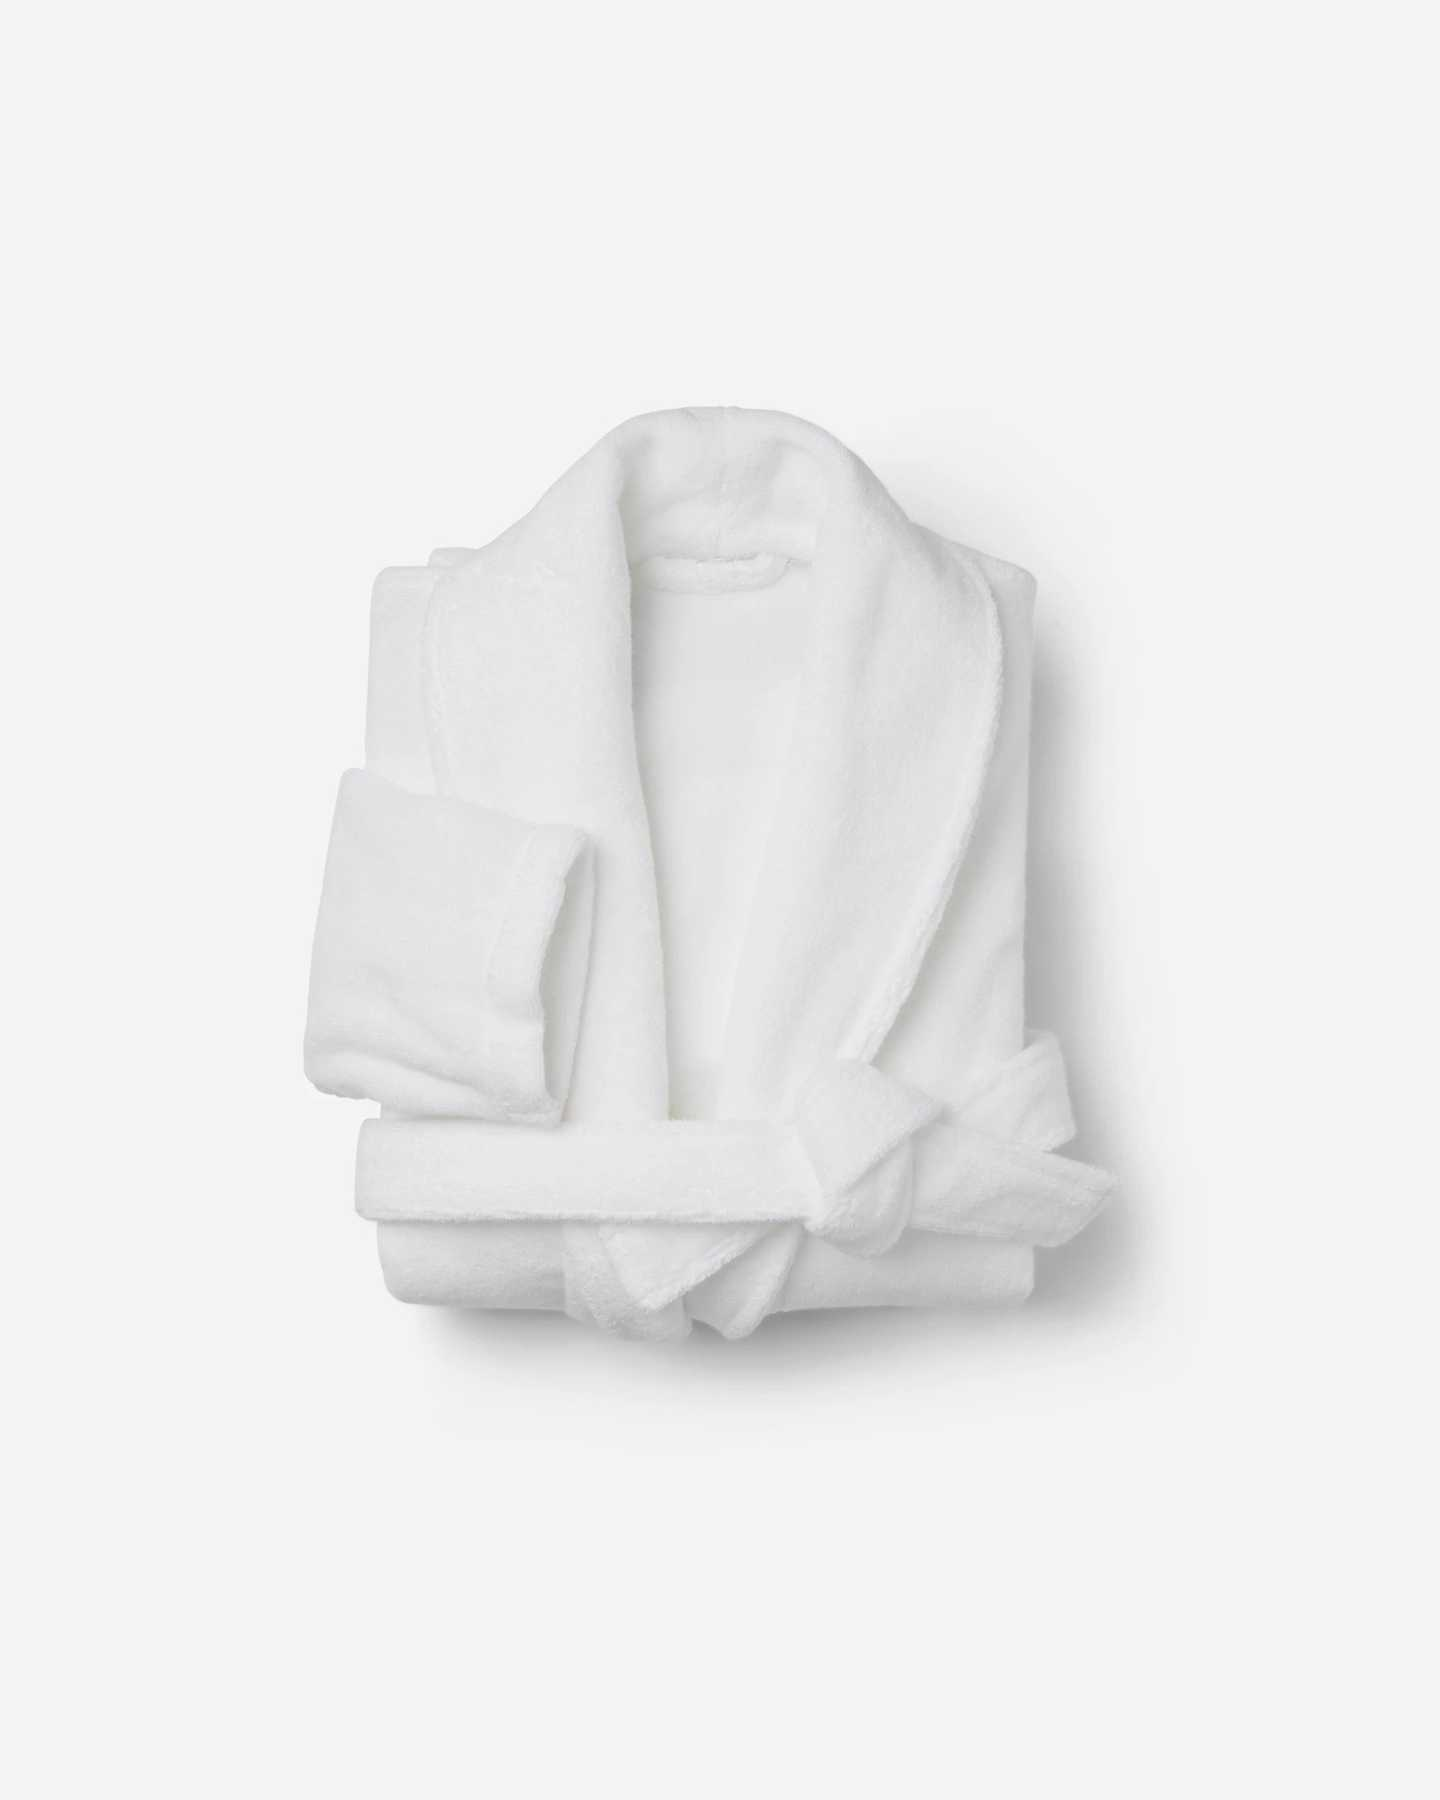 Luxe Turkish Cotton Bath Robe - White